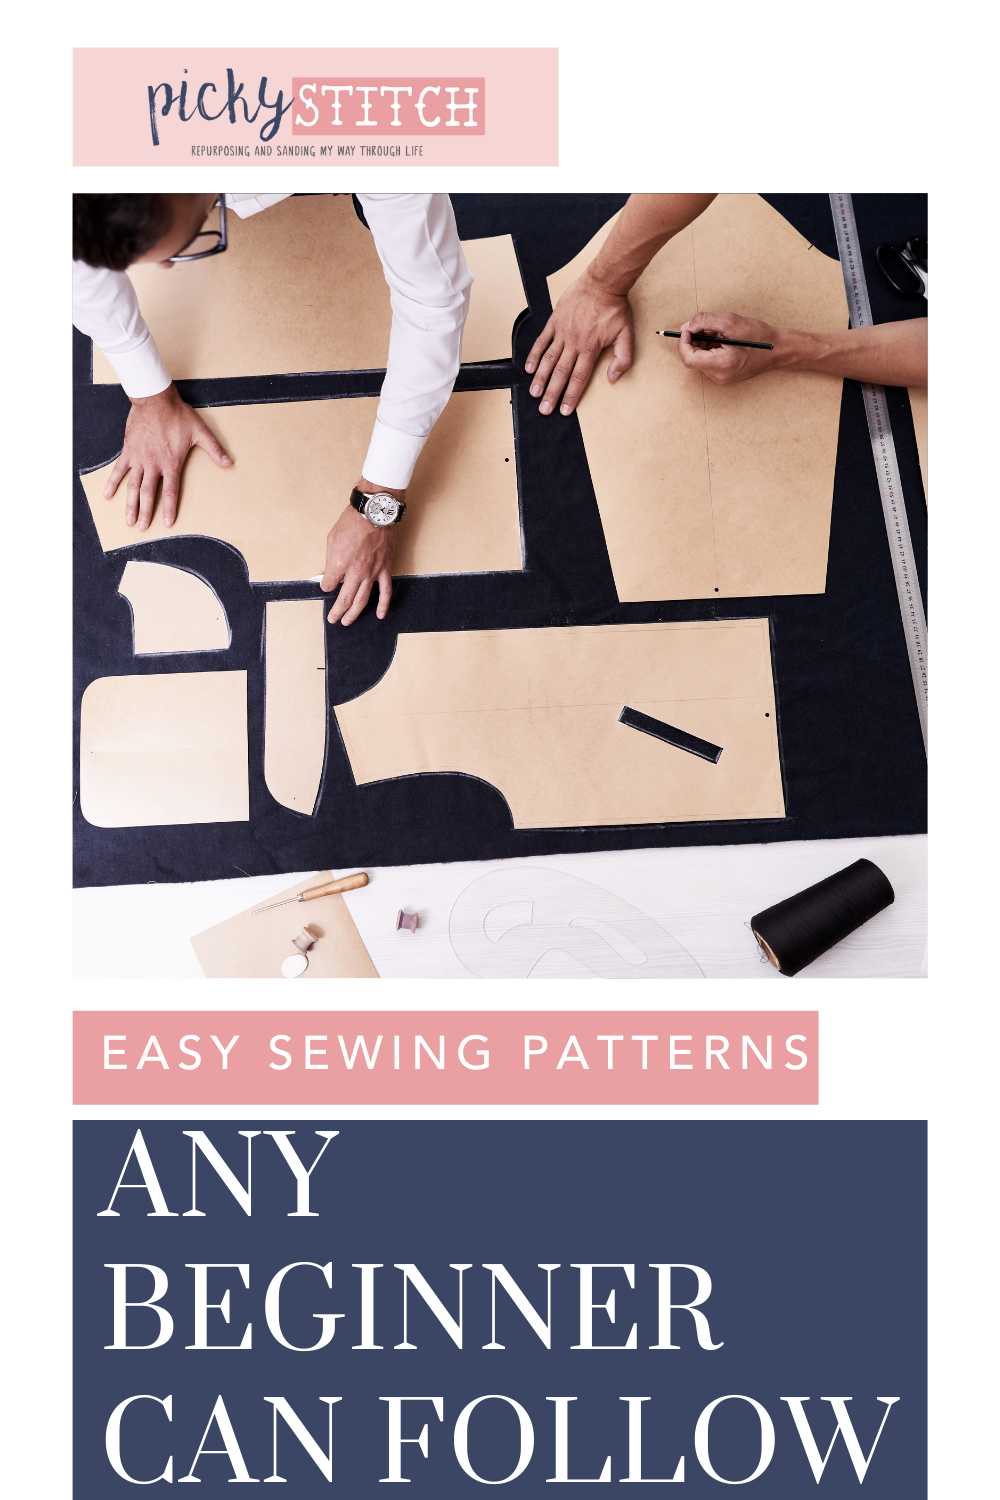 Pickystitch.com is loaded with tips and ideas to help you tackle any DIY project. Thinking about getting into the world of sewing? Find the best simple patterns you'll need to get started!